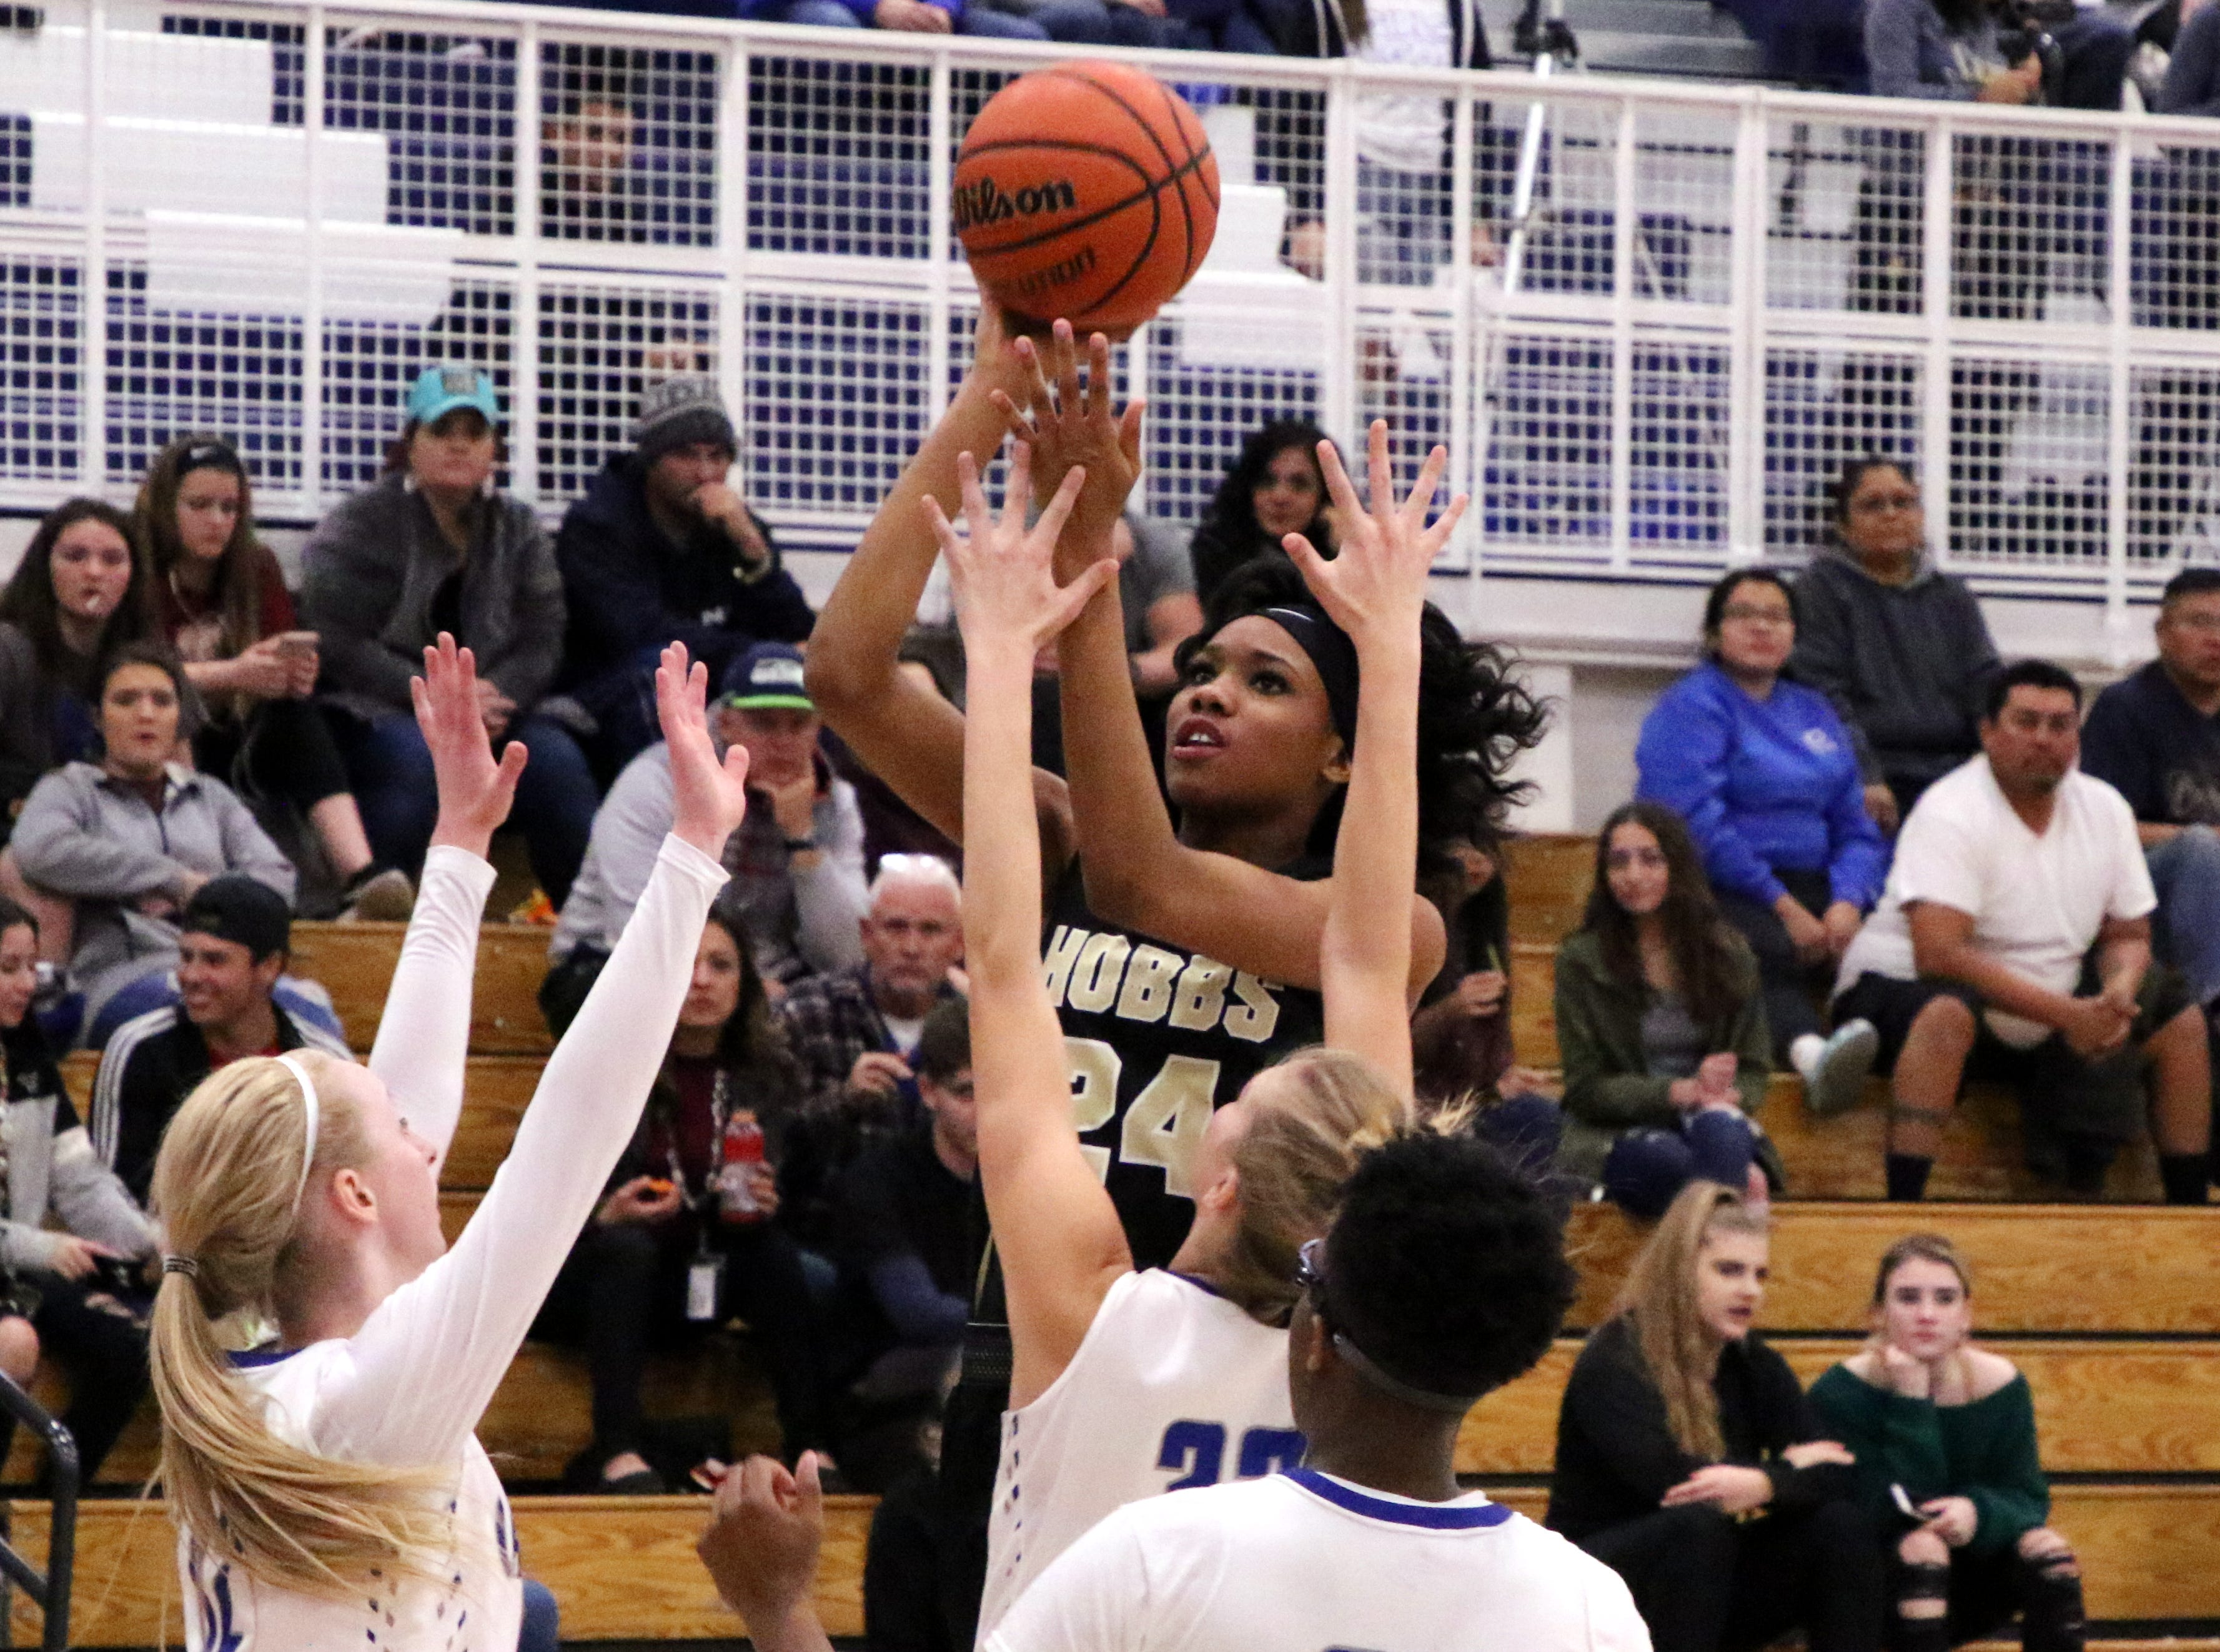 Ayanna Smith takes a shot over three Cavegirl defenders in the first half of Friday's game. Smith finished with 10 points for the Lady Eagles.